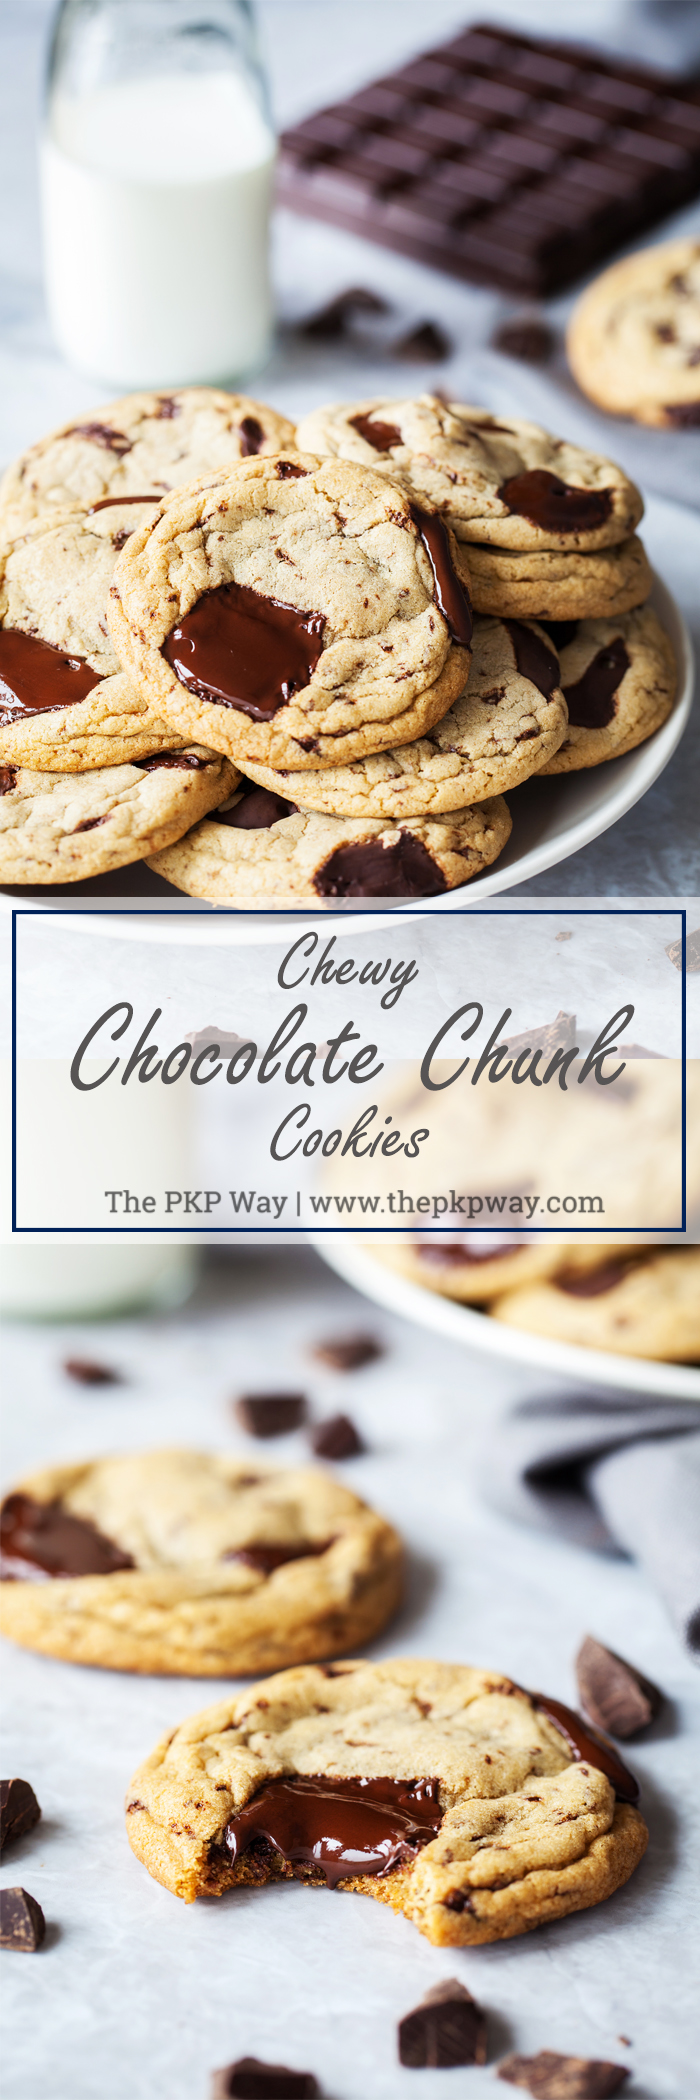 Chewy Chocolate Chunk Cookies | The PKP Way